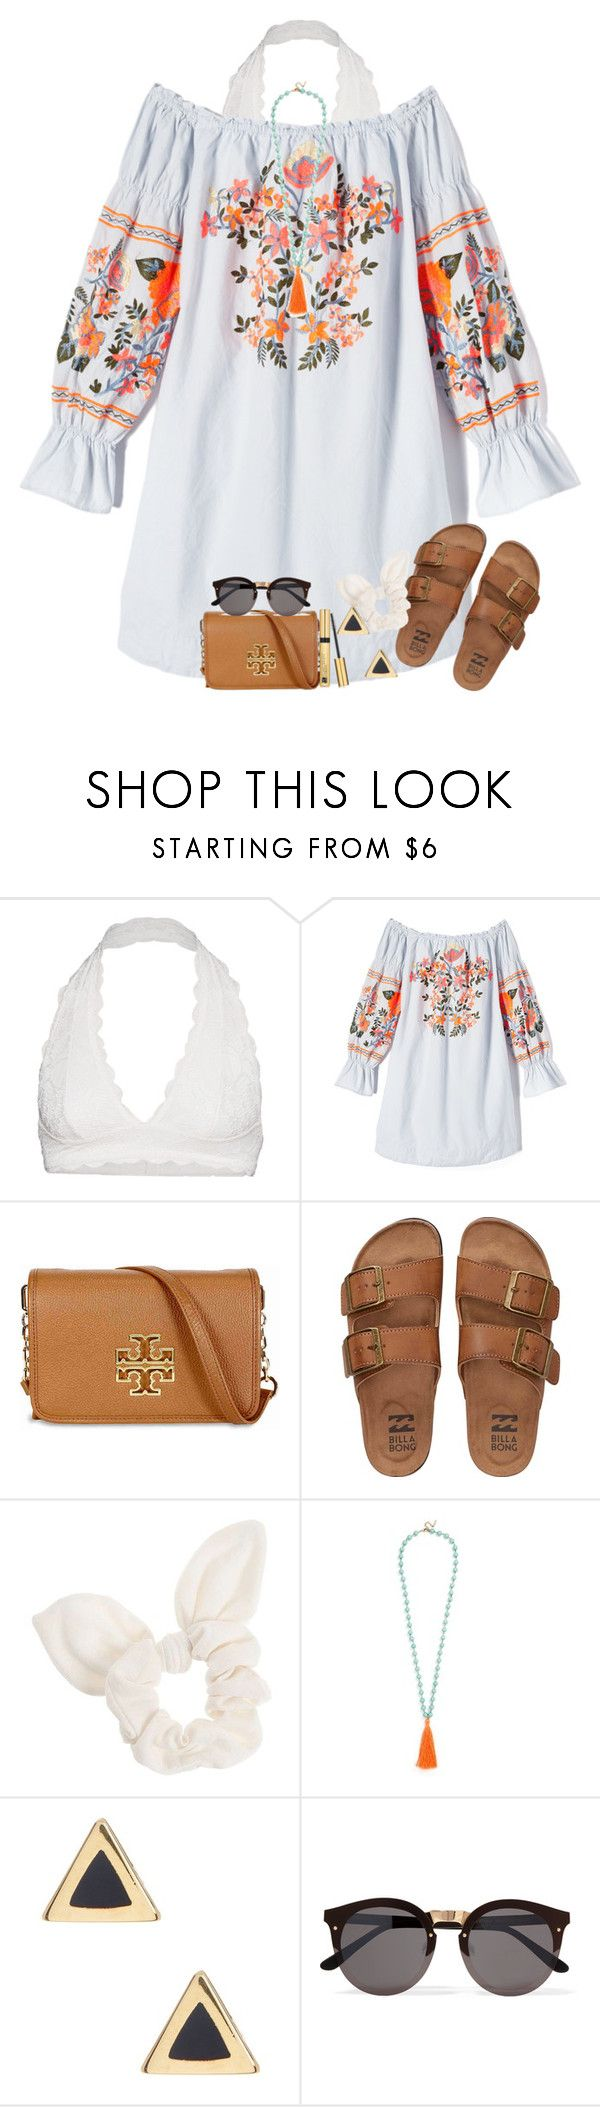 """""""Summer vibe """" by amaya-leigh ❤ liked on Polyvore featuring Free People, Tory Burch, Billabong, Dorothy Perkins, BaubleBar, Ariella Collection, Illesteva and Estée Lauder"""